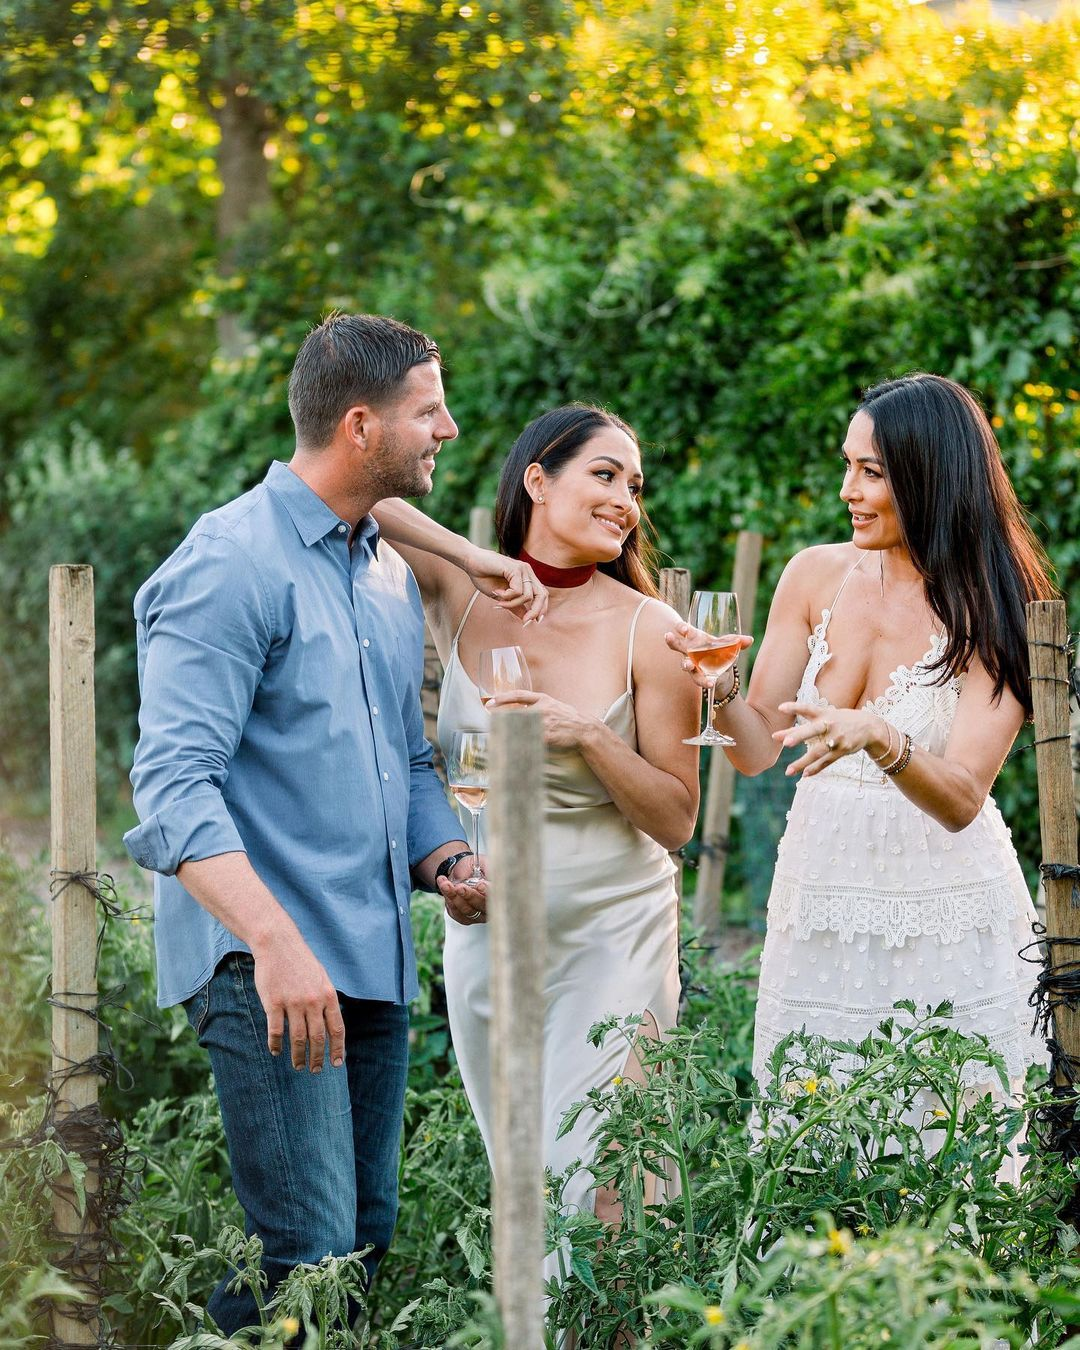 Nikki Bella Poses As White Wine Lover In Stunning Photos Ahead Of WWE Collaboration 44